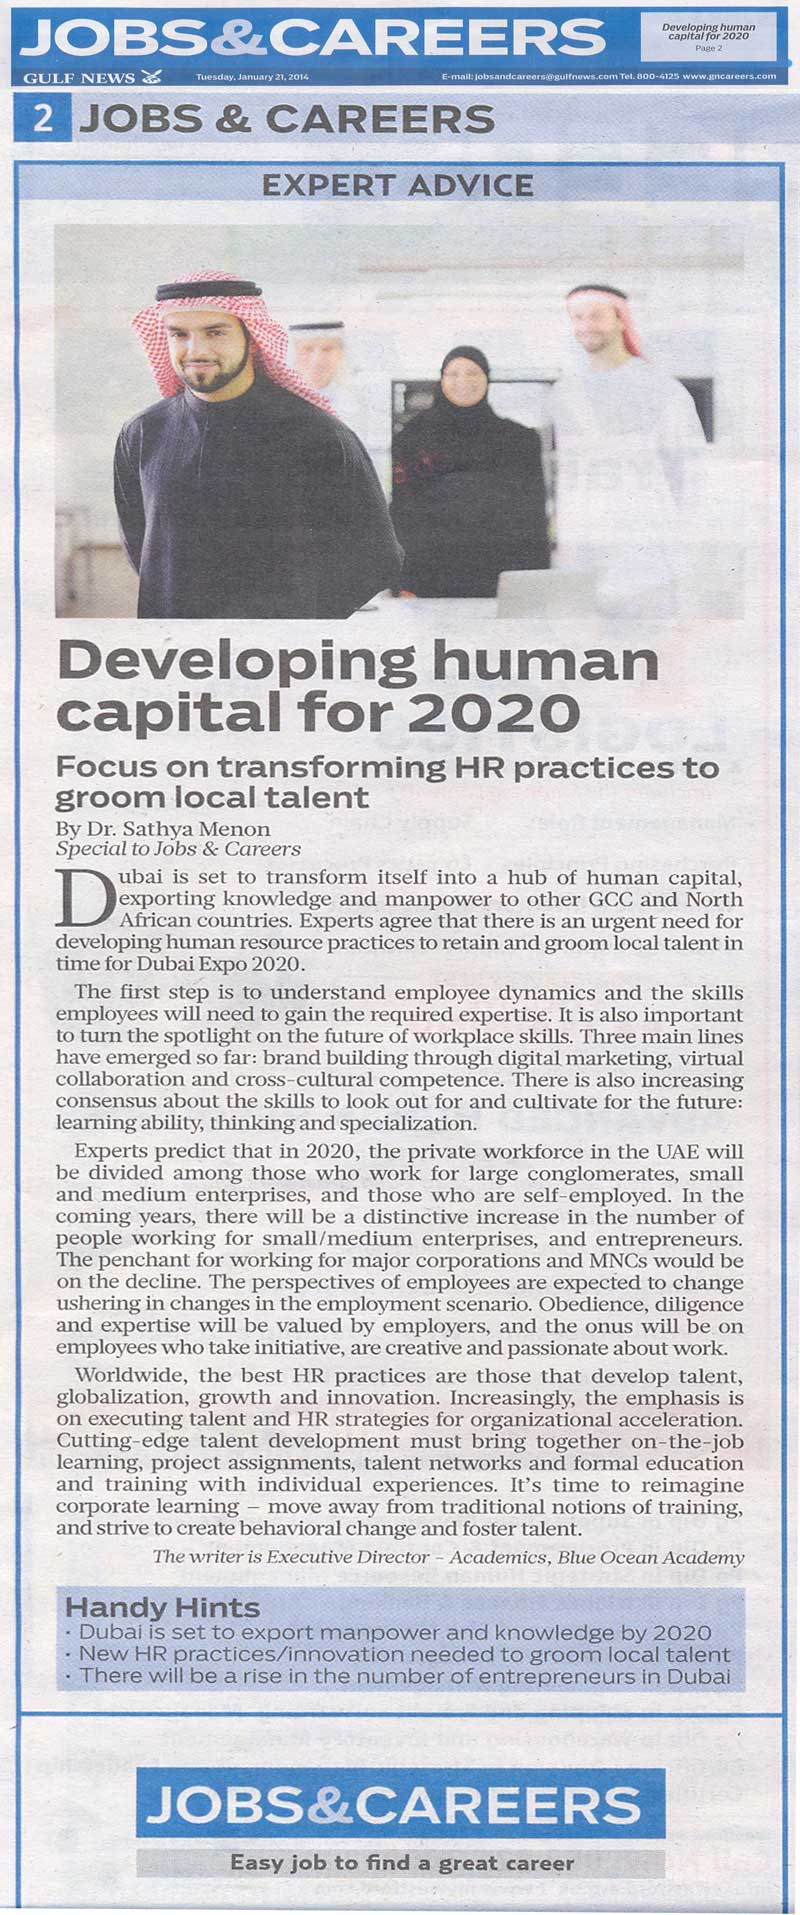 Developing human capital for 2020